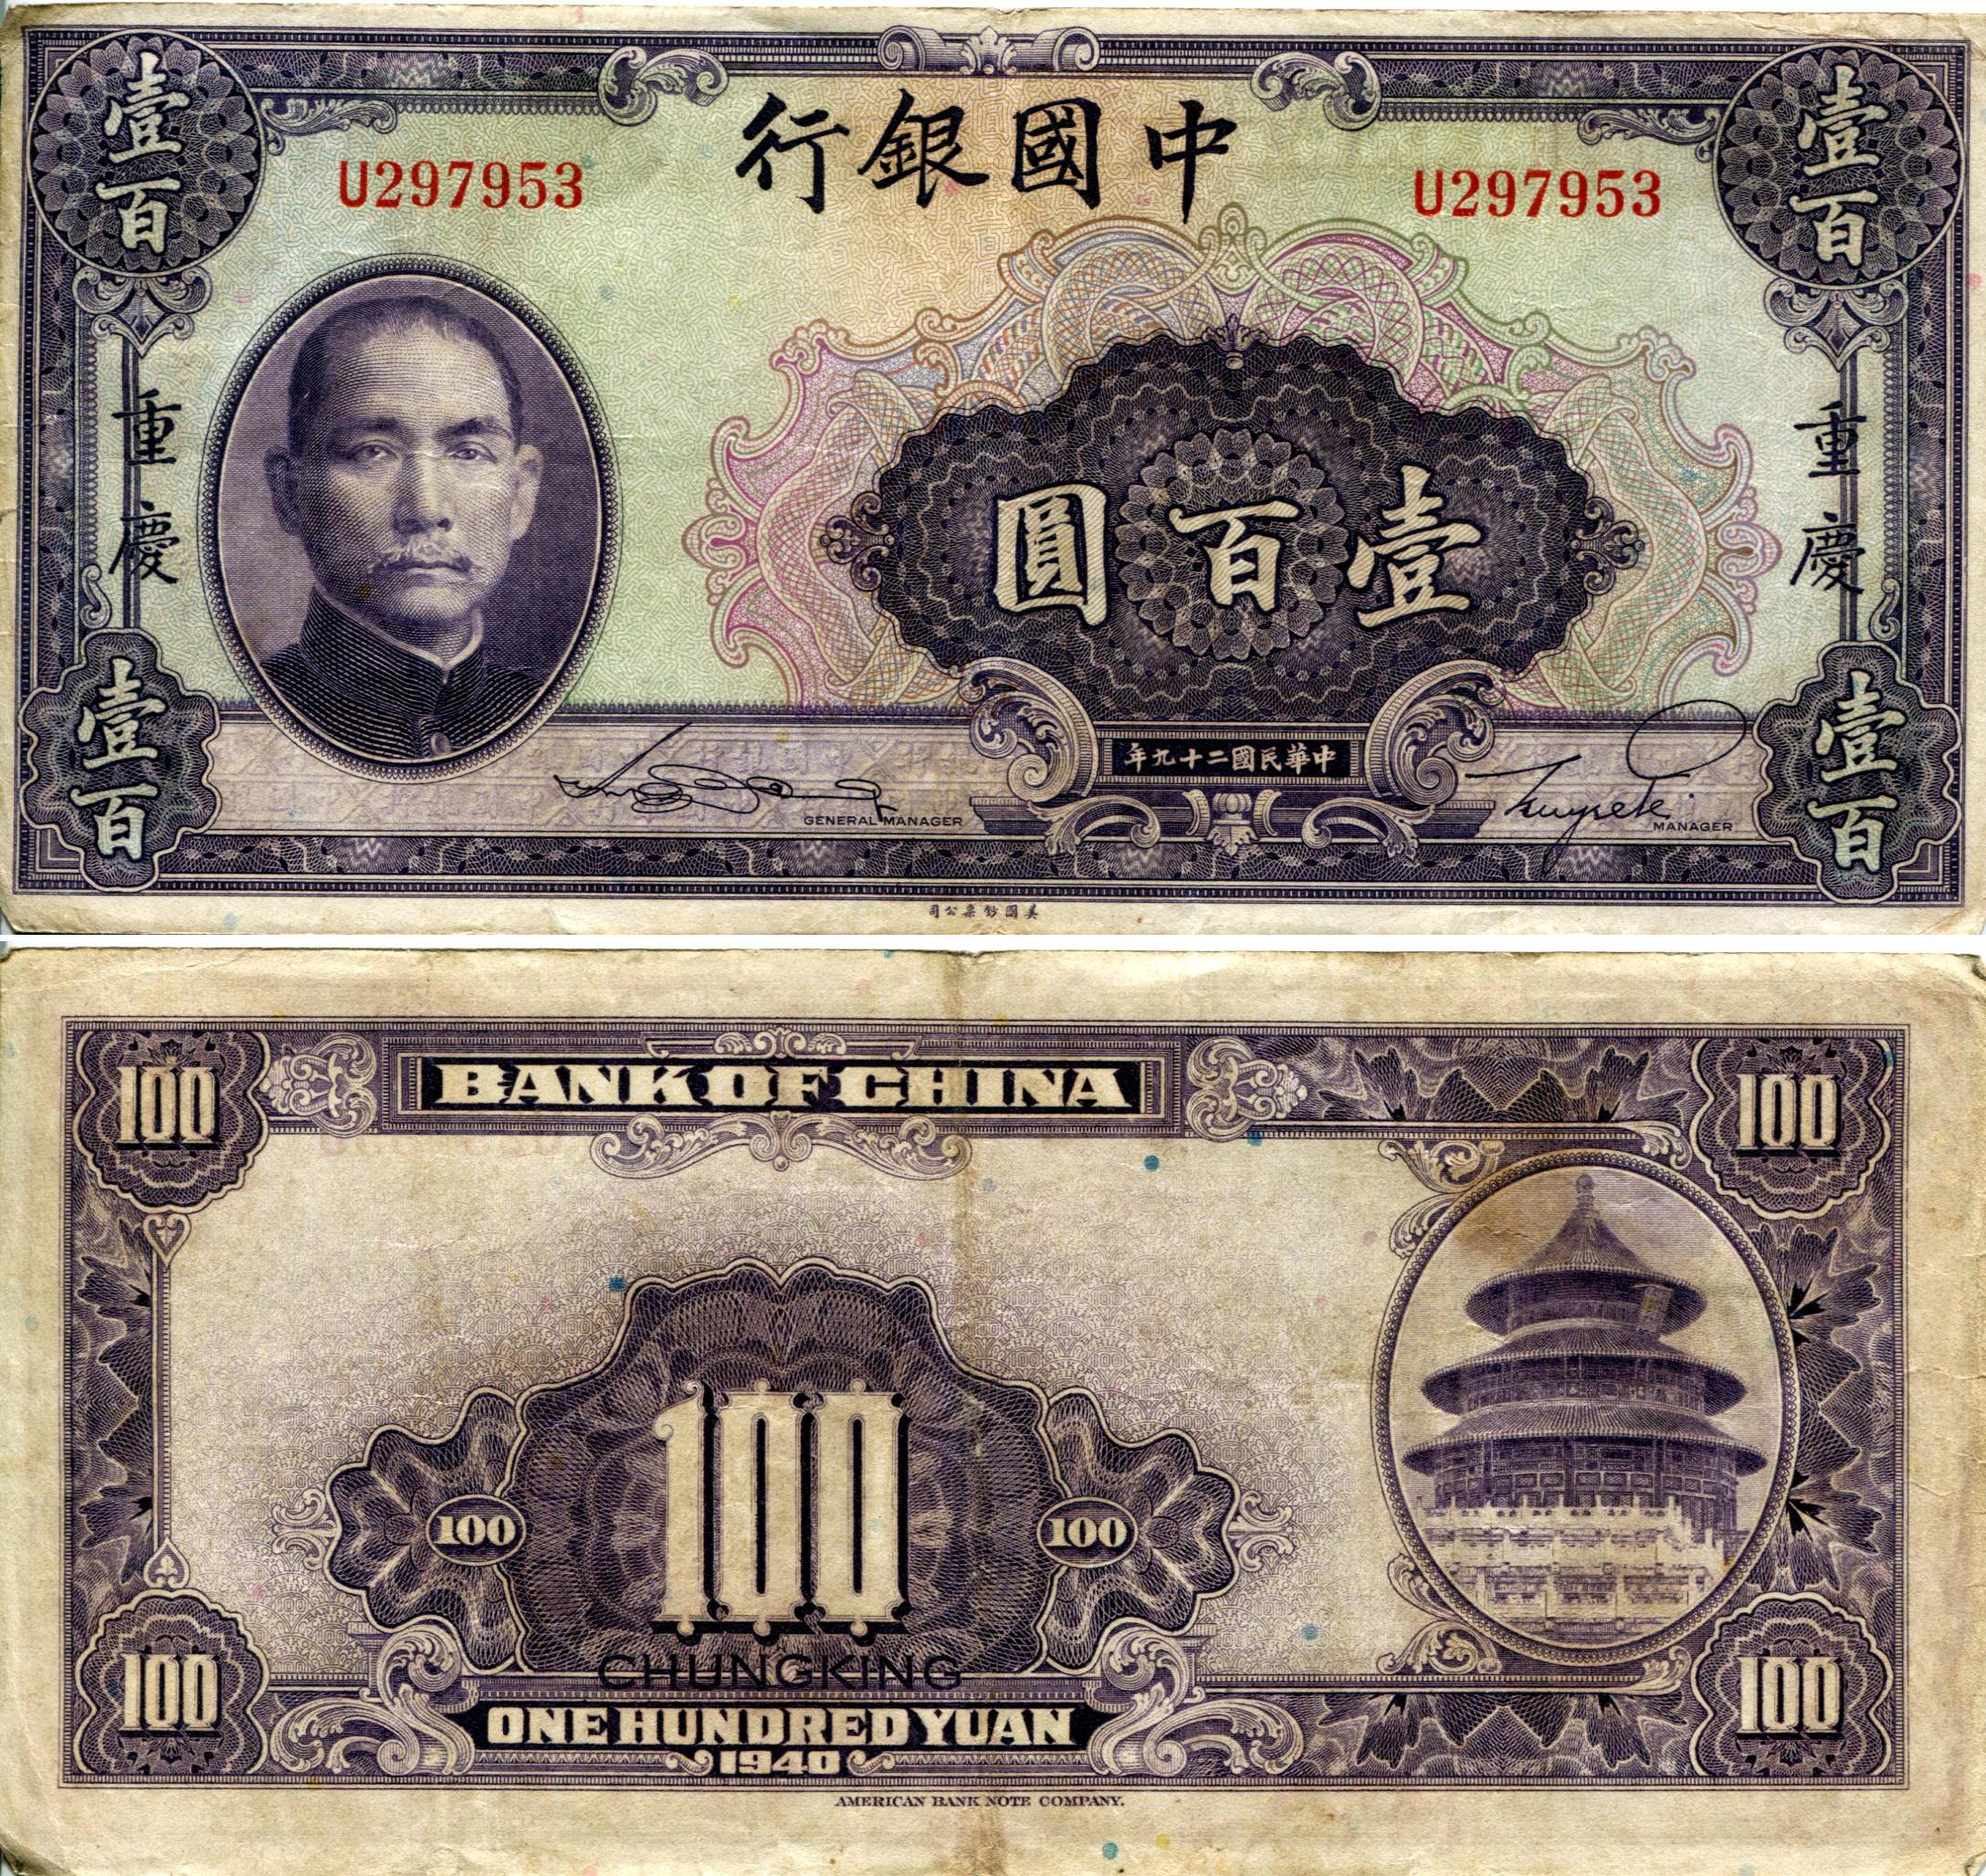 P87c Bank Of China 100 Yuan Banknote With Chungking Overprint 1940 P88c